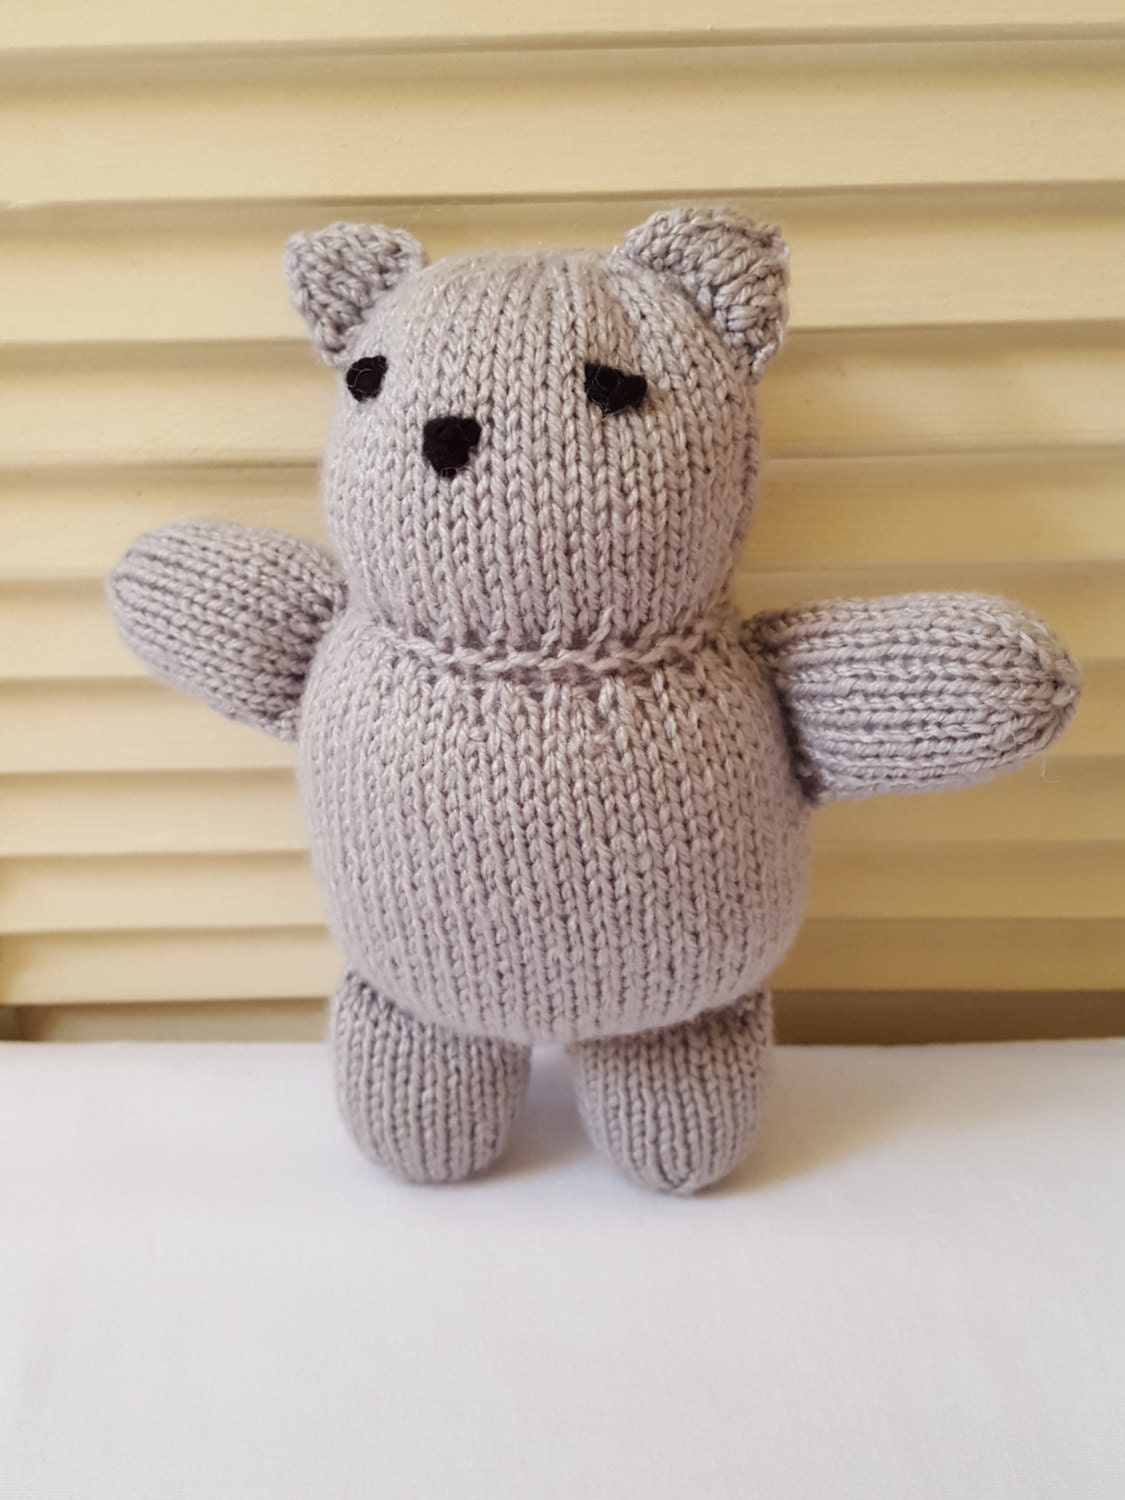 Hand Knitted Toys : Kitty cat stuffed animal toy hand knitted amigurumi doll